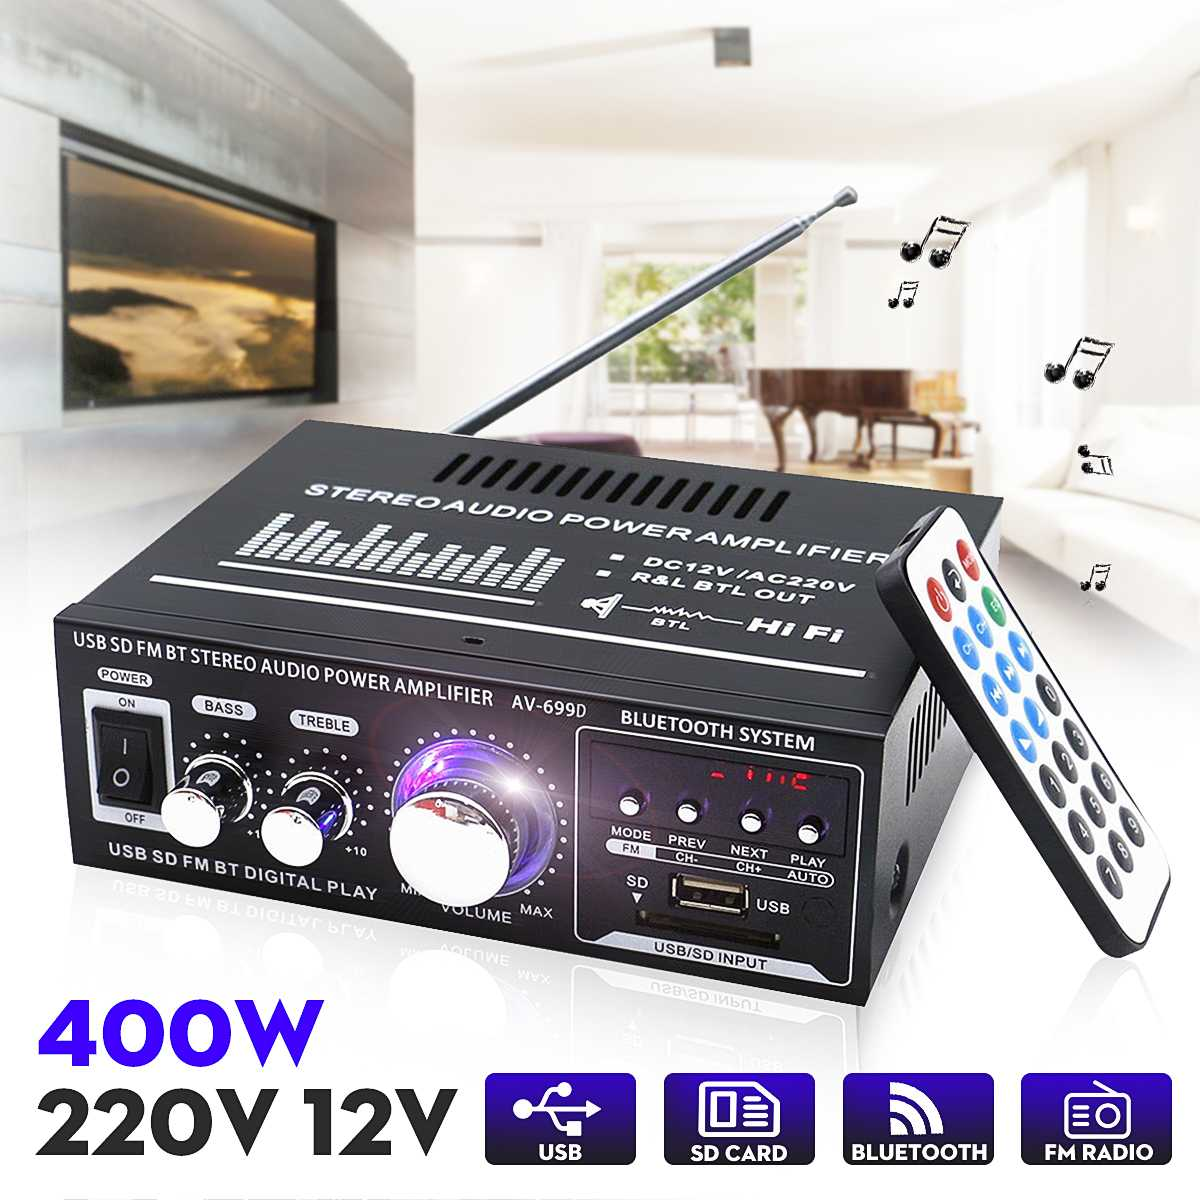 400W 2Chanel LED Display Home bluetooth <font><b>Amplifier</b></font> Mini <font><b>HiFi</b></font> Stereo Power Home Theater <font><b>Amplifier</b></font> Support USB Memory Card FM Radio image